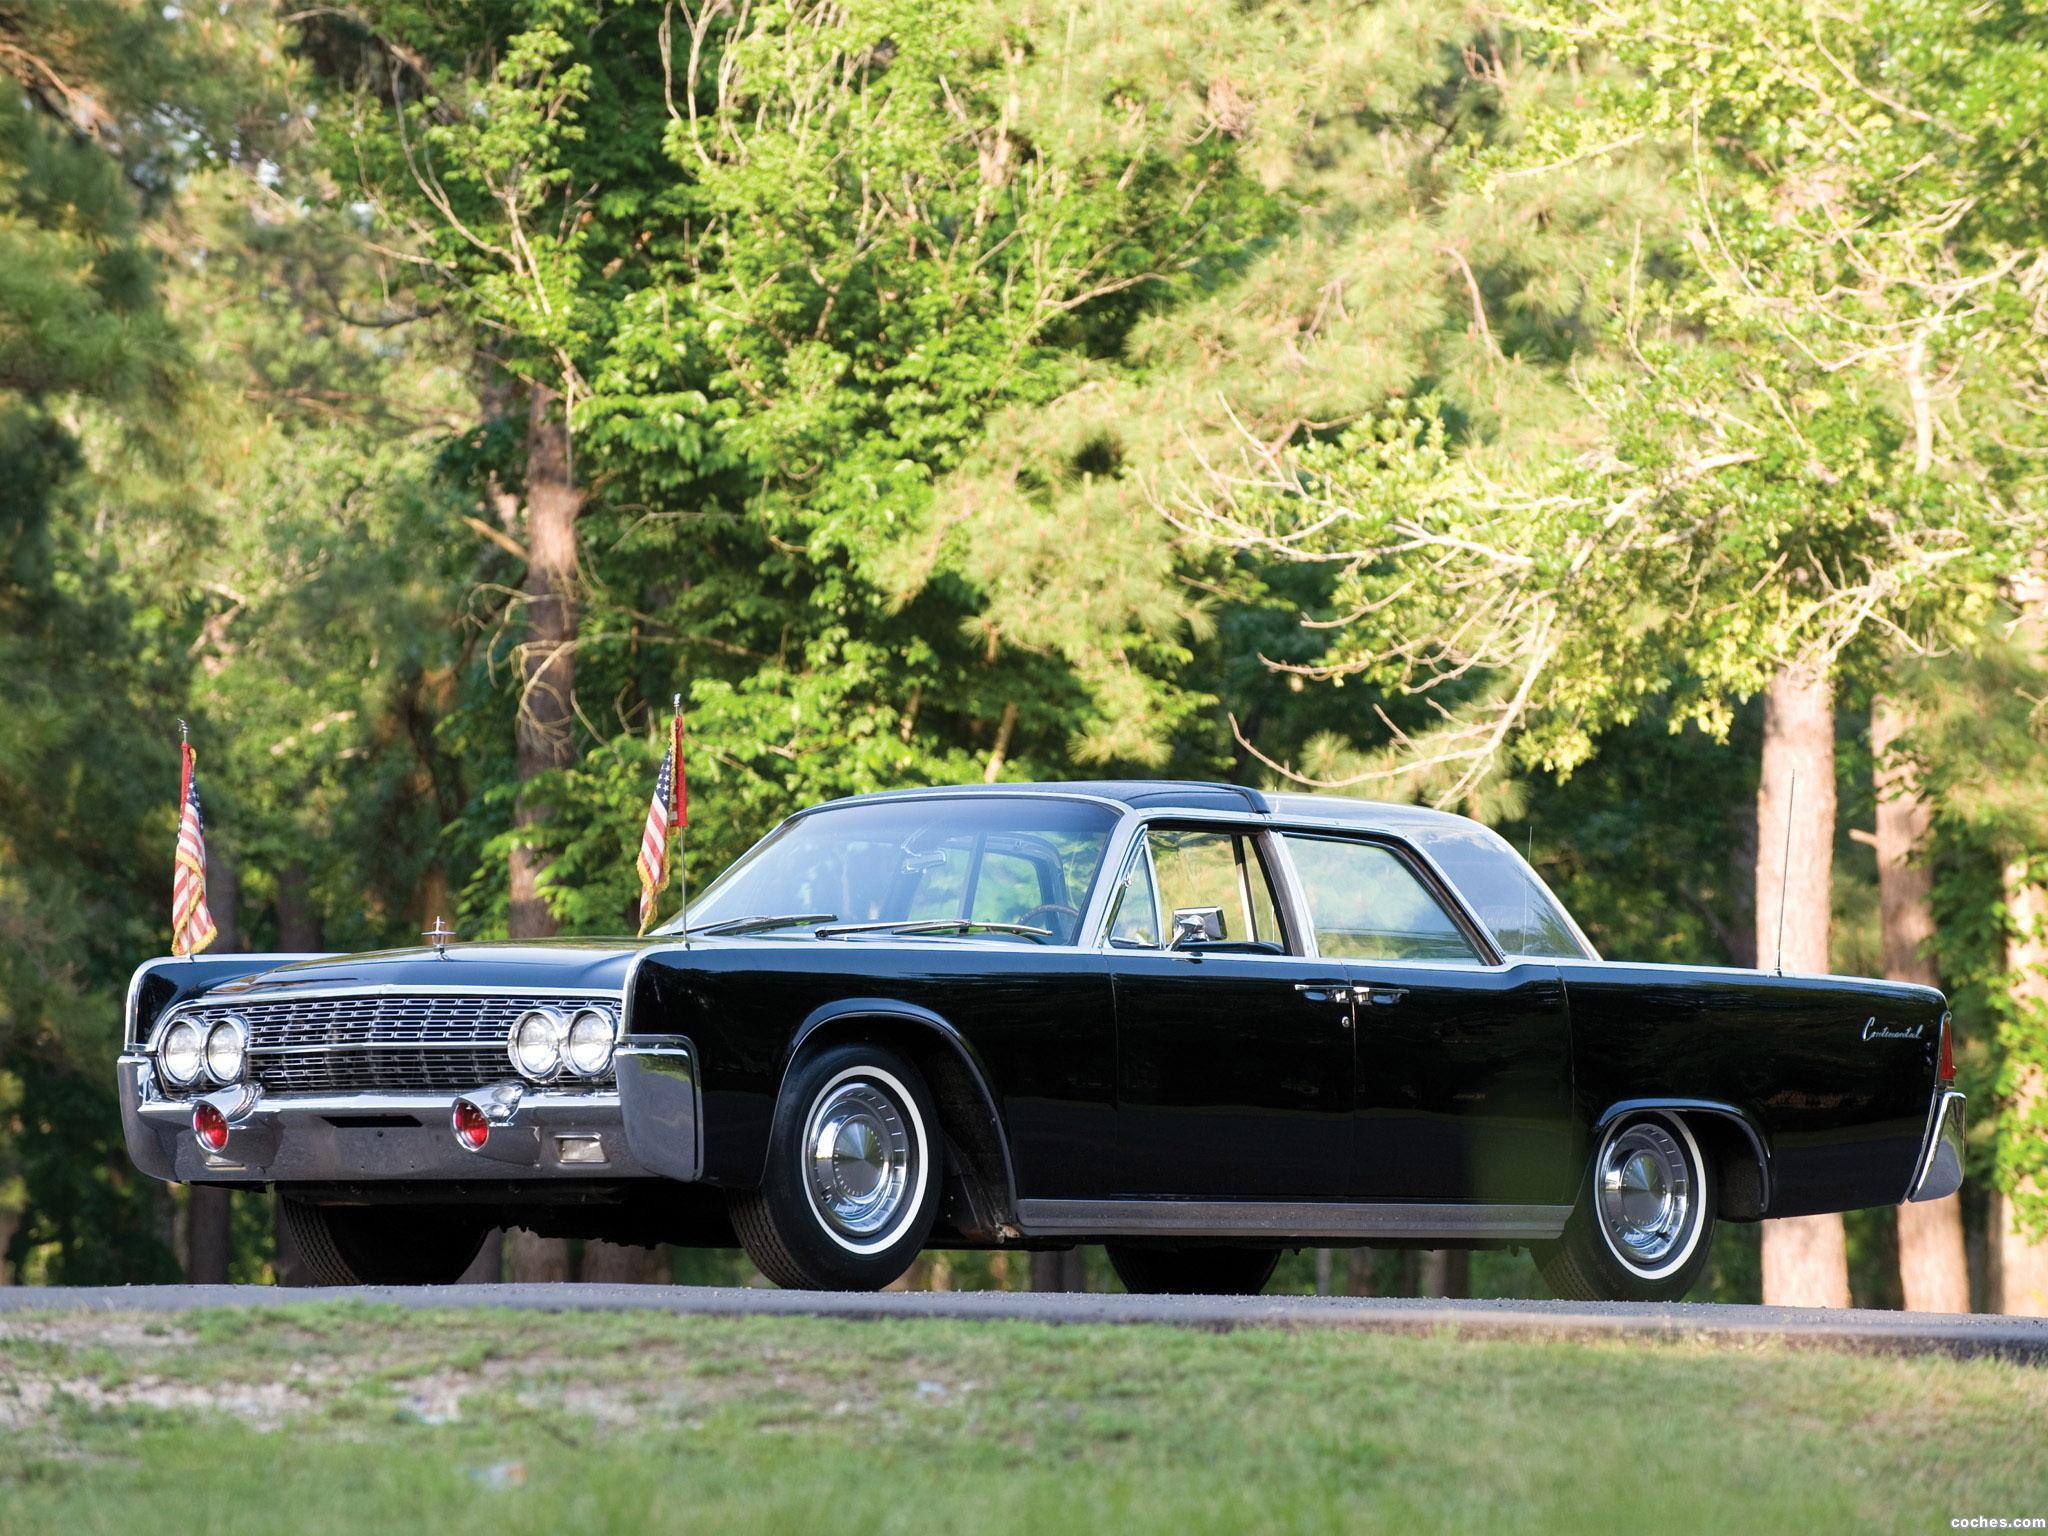 fotos de lincoln continental bubbletop kennedy limousine 1962. Black Bedroom Furniture Sets. Home Design Ideas